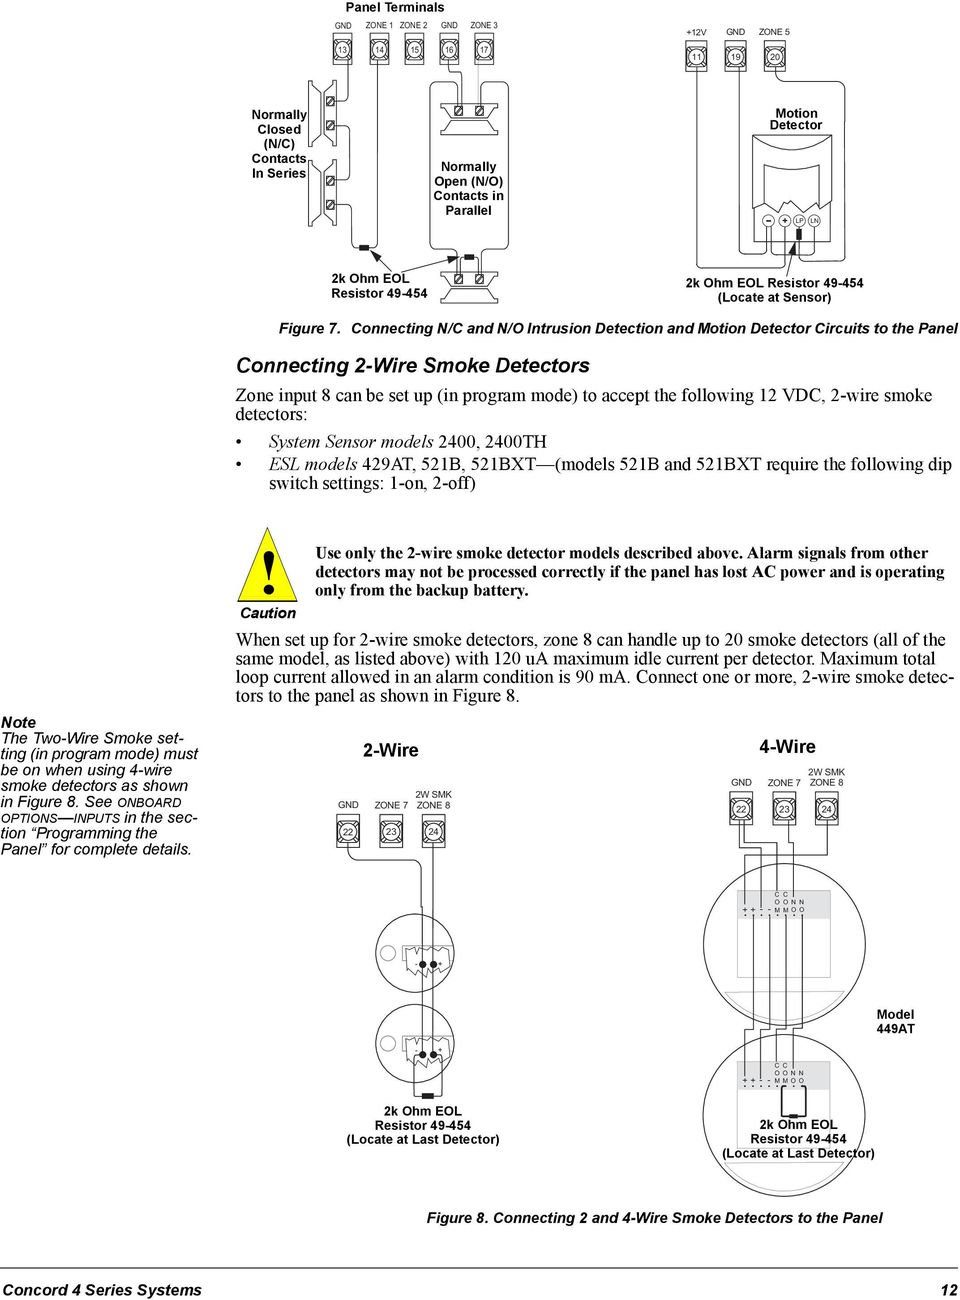 hight resolution of concord 4 series security systems pdf49 454 locate at sensor figure 7